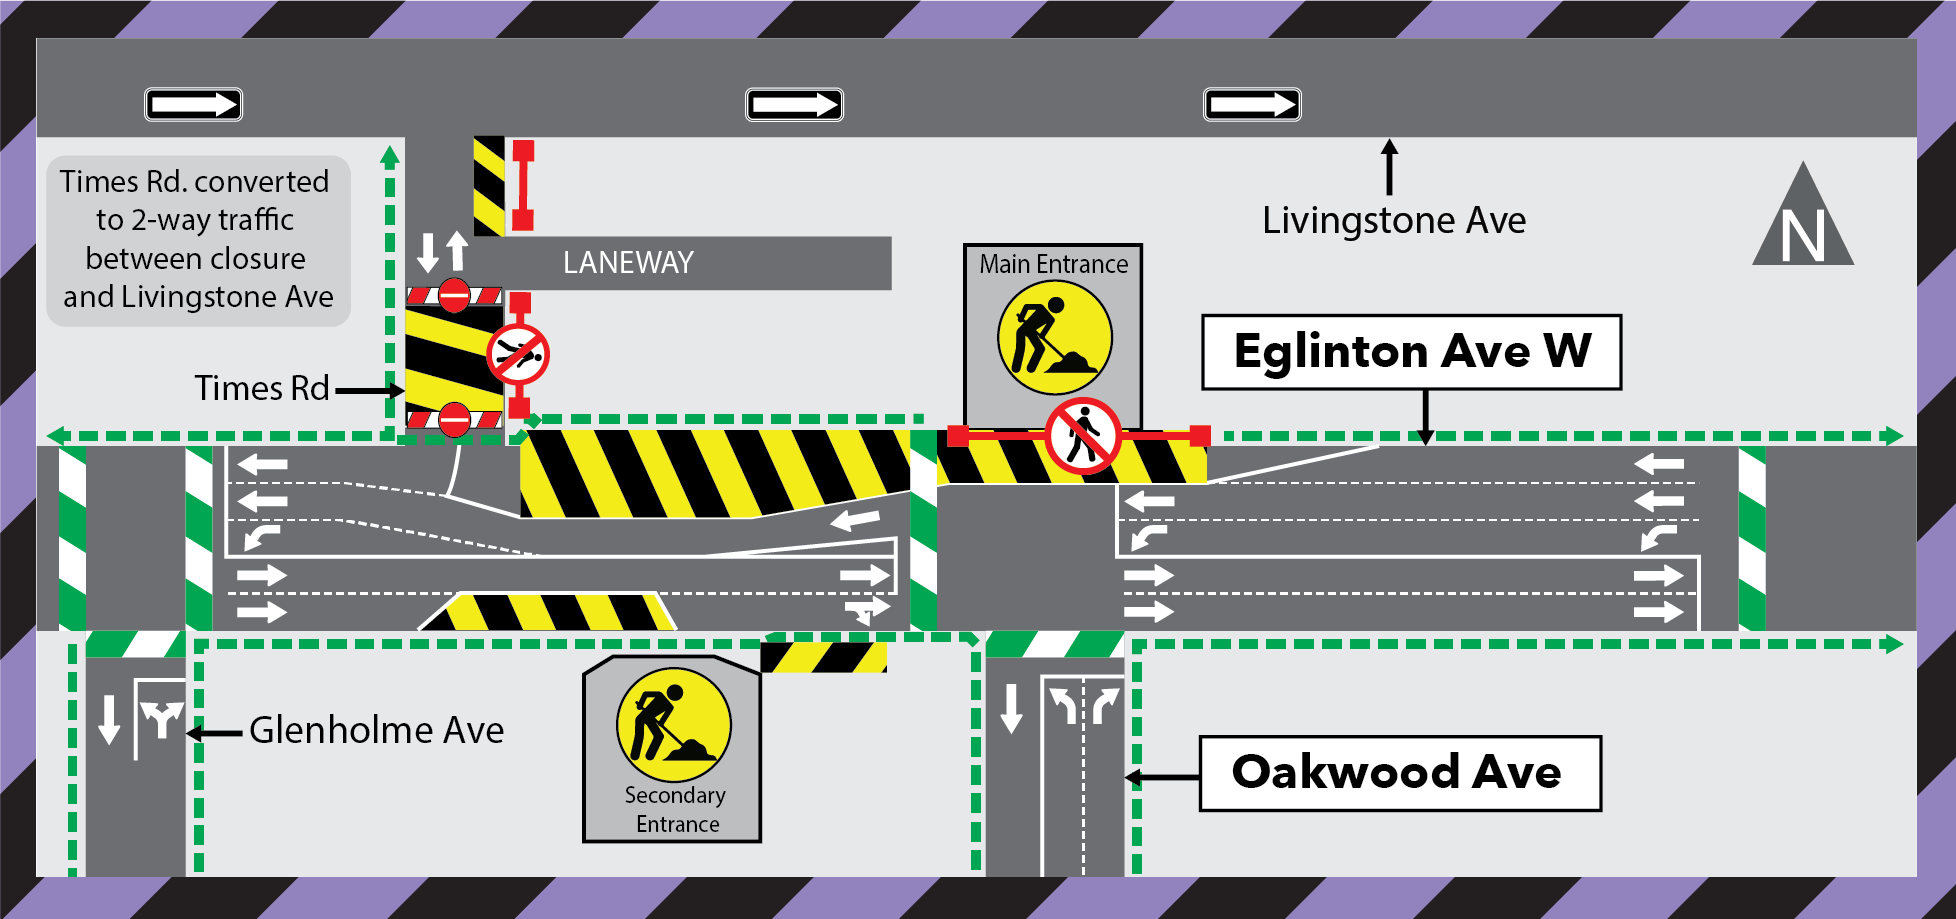 Update: 24-hour Construction at Oakwood Station March 2021